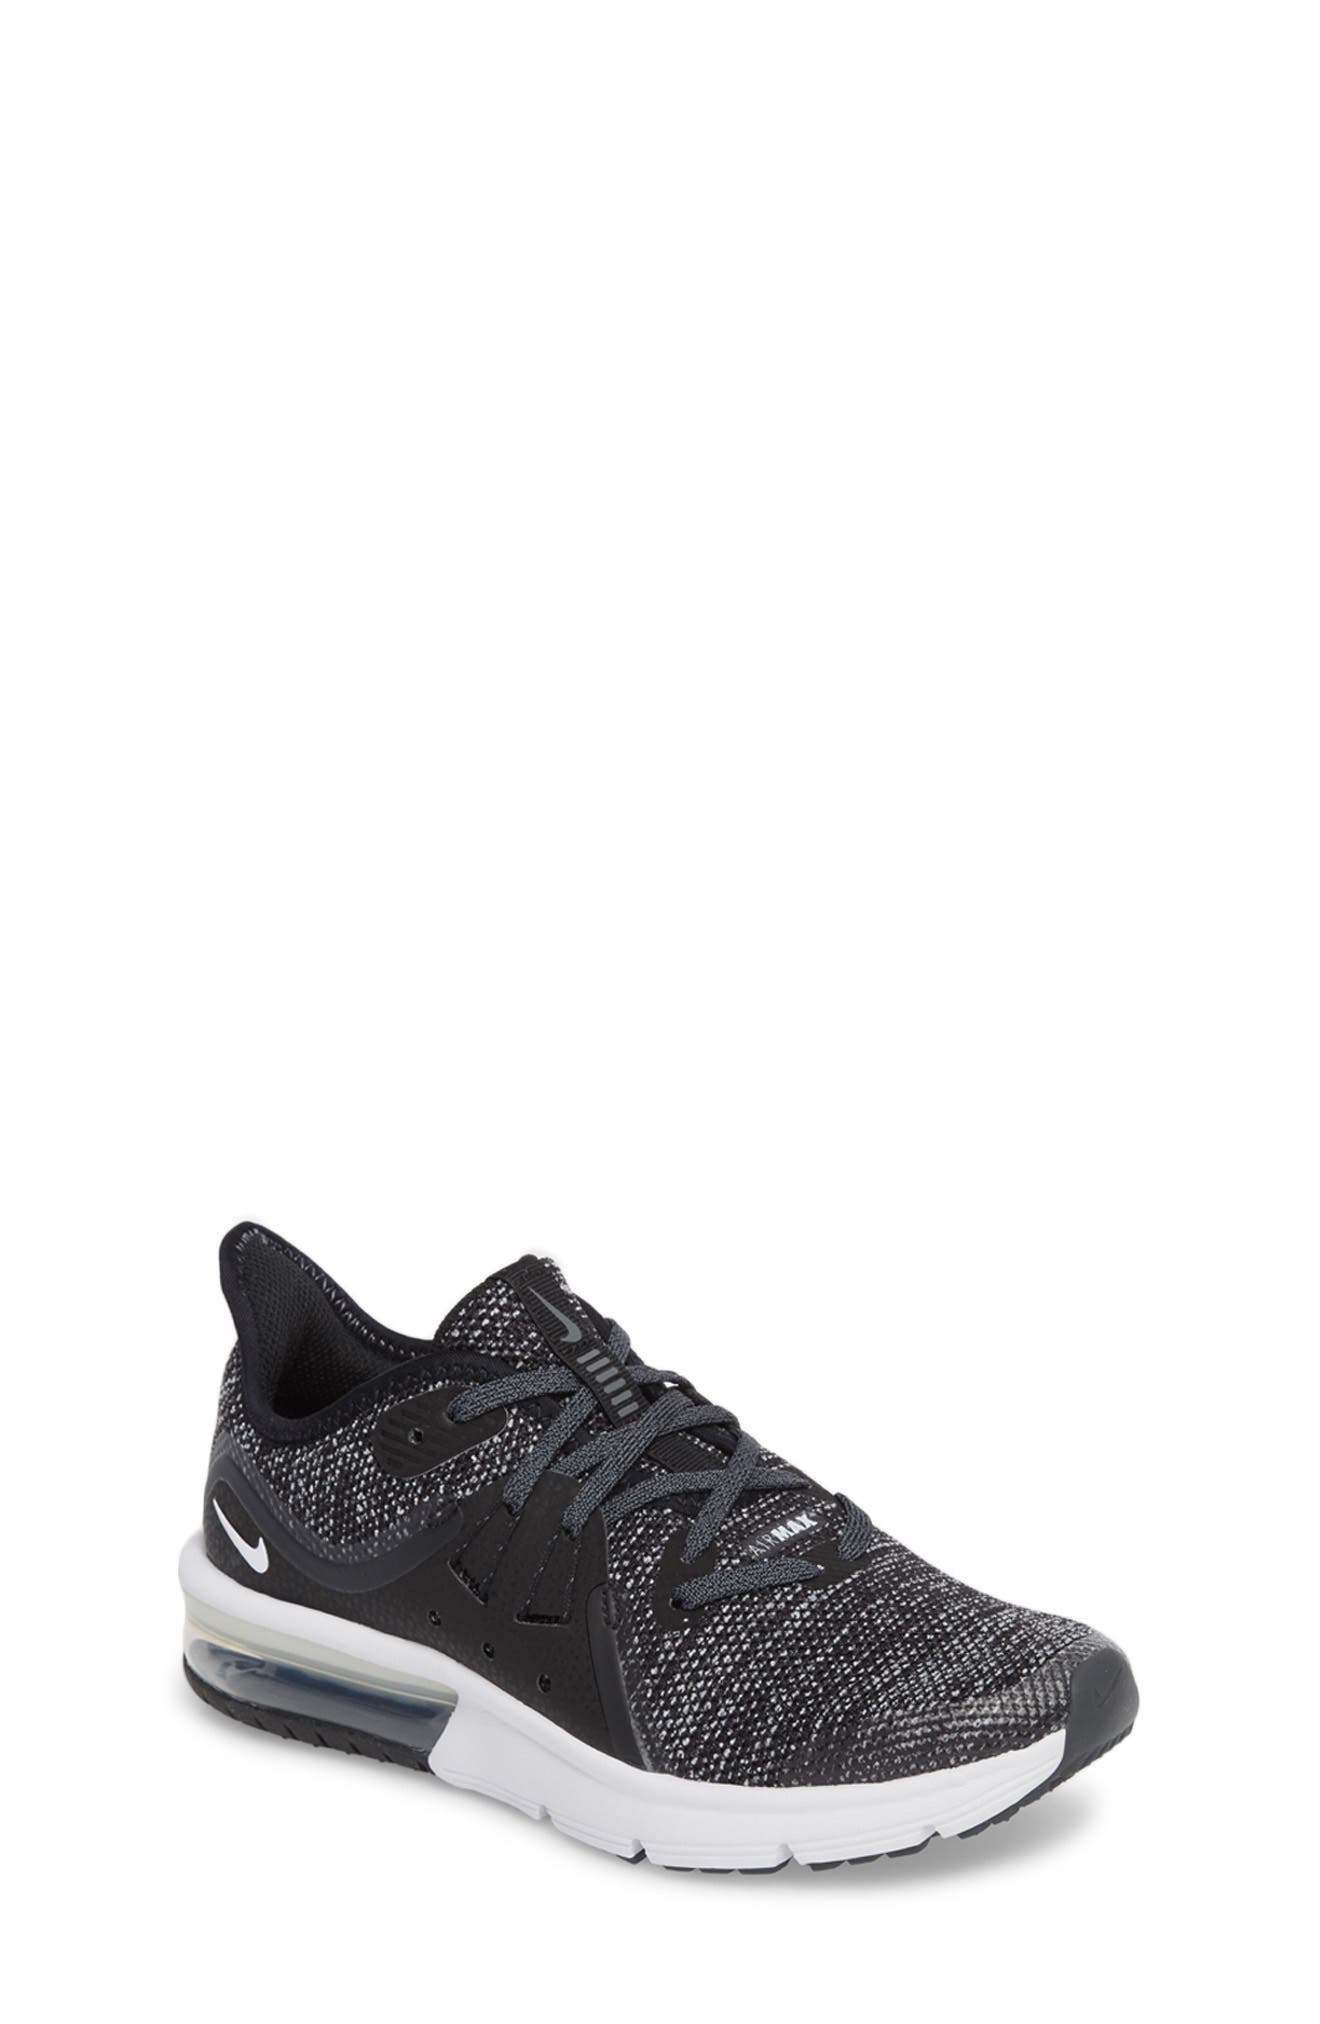 Air Max Sequent 3 GS Running Shoe,                             Main thumbnail 1, color,                             BLACK/ WHITE/ DARK GREY